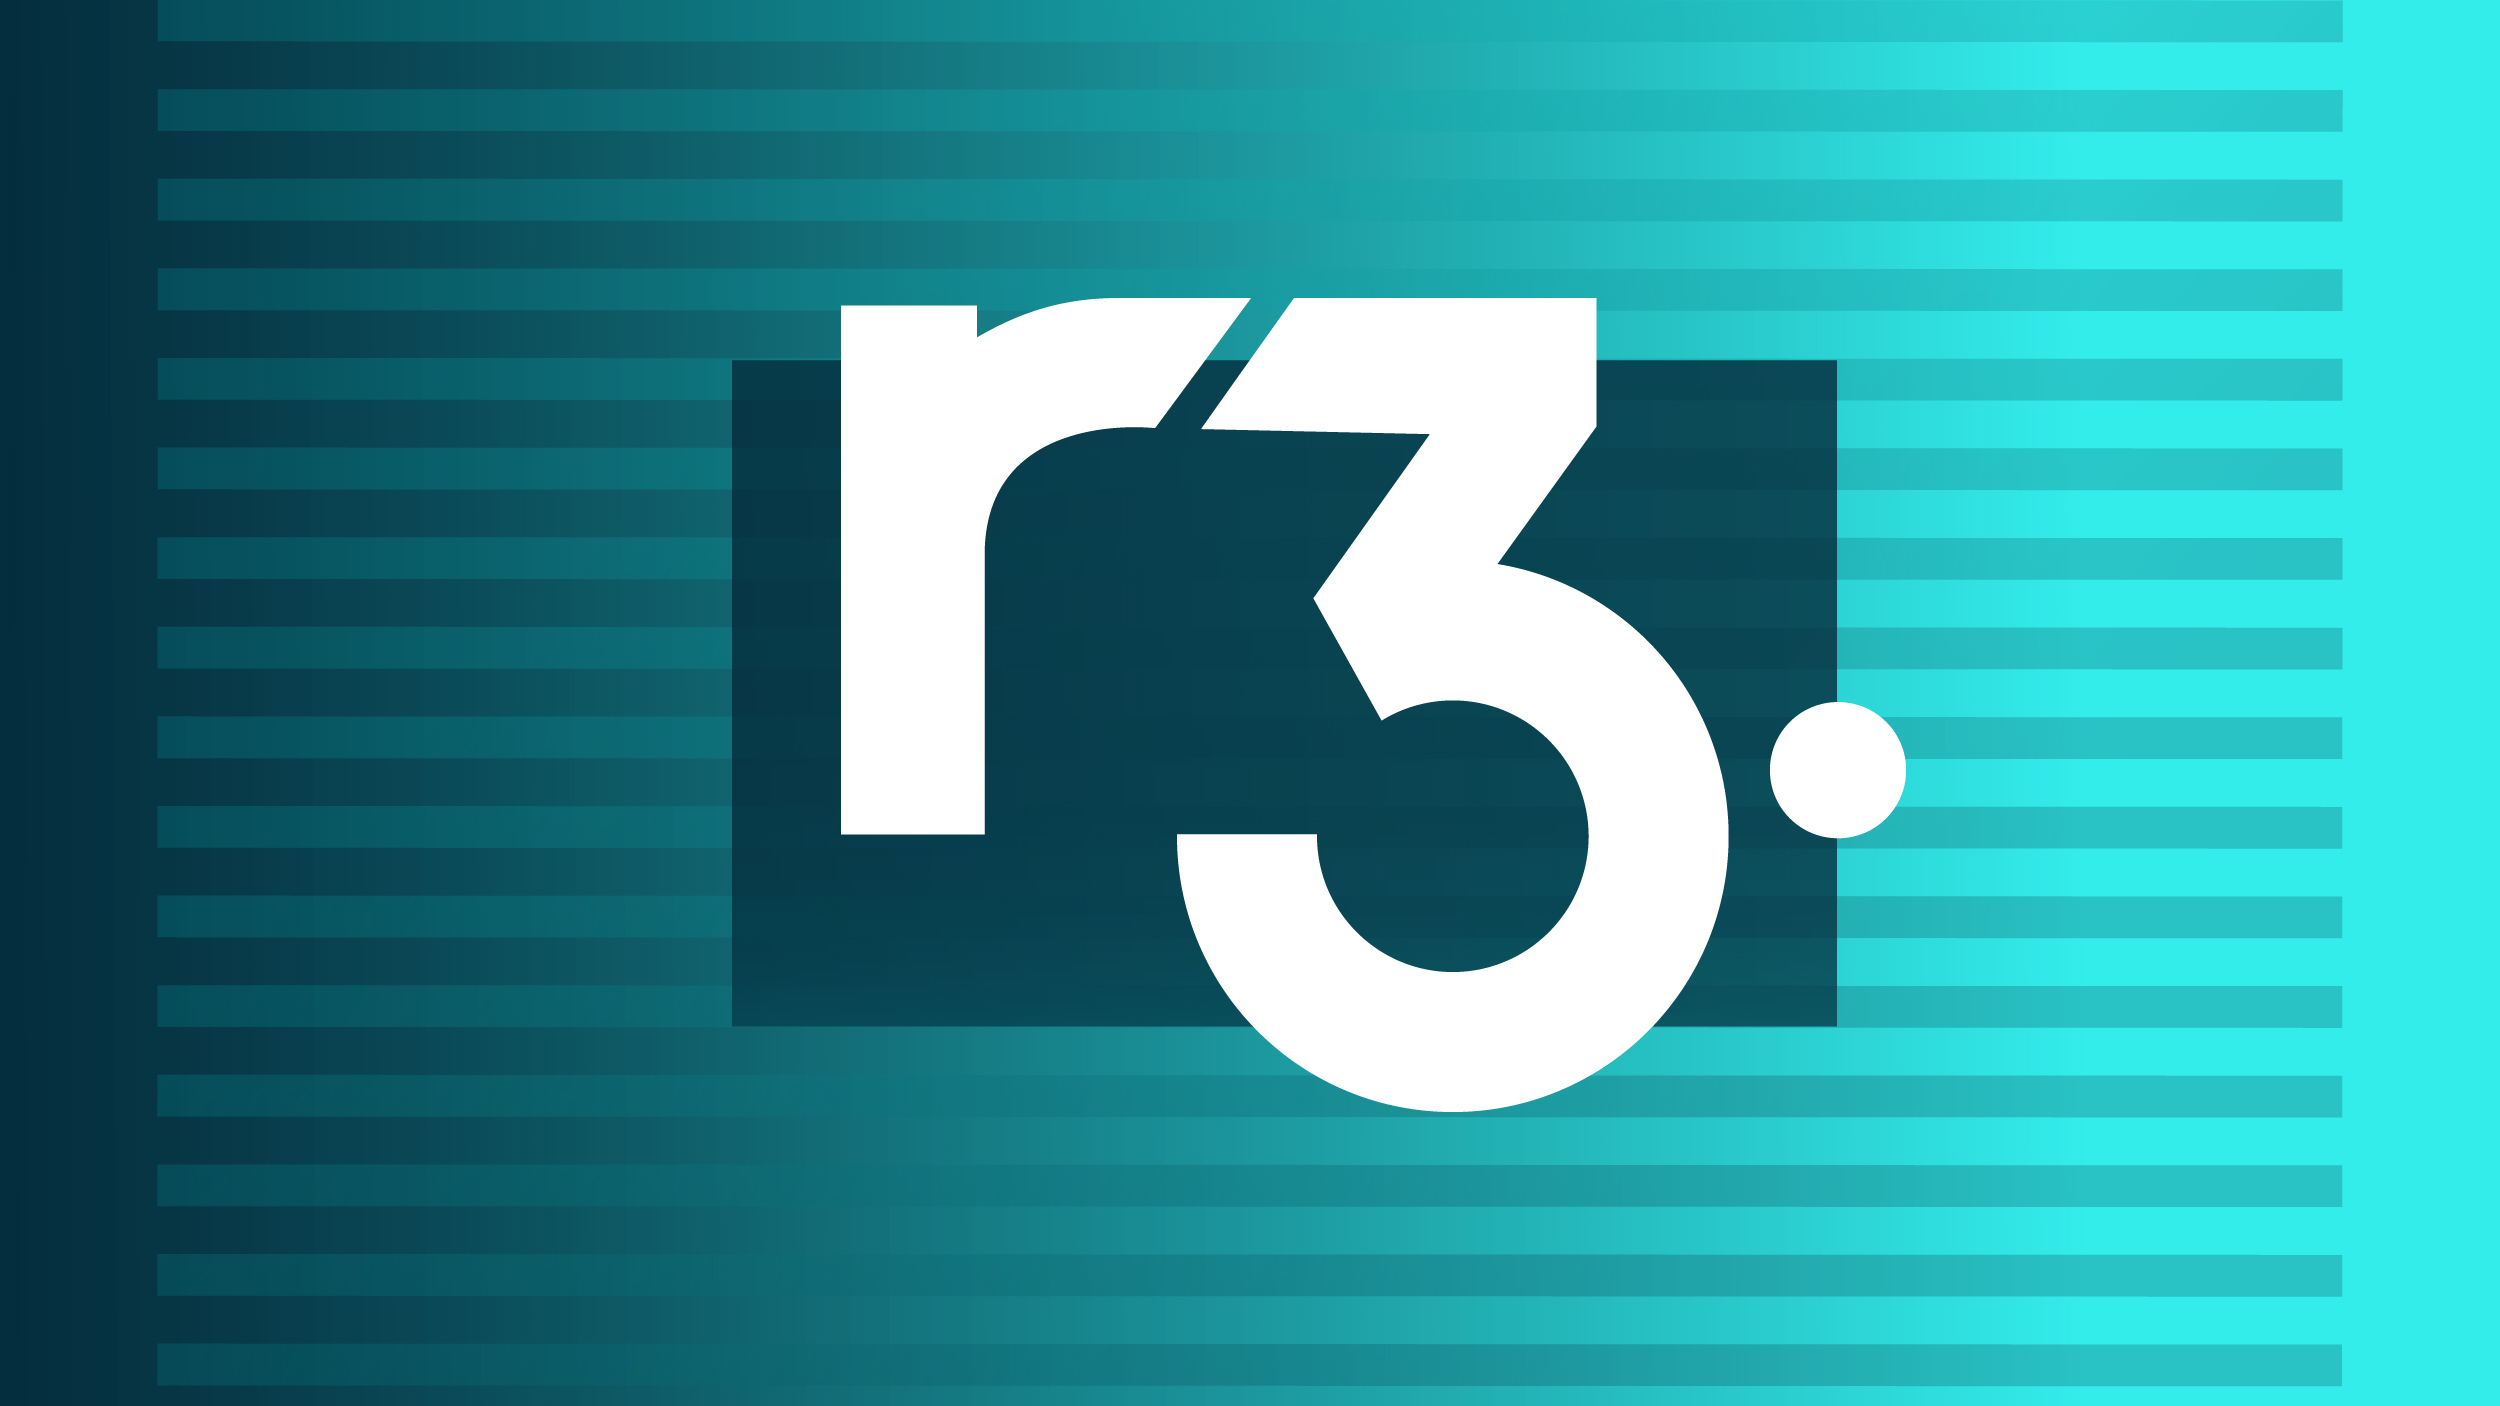 R3 is working on a DeFi network with its own token